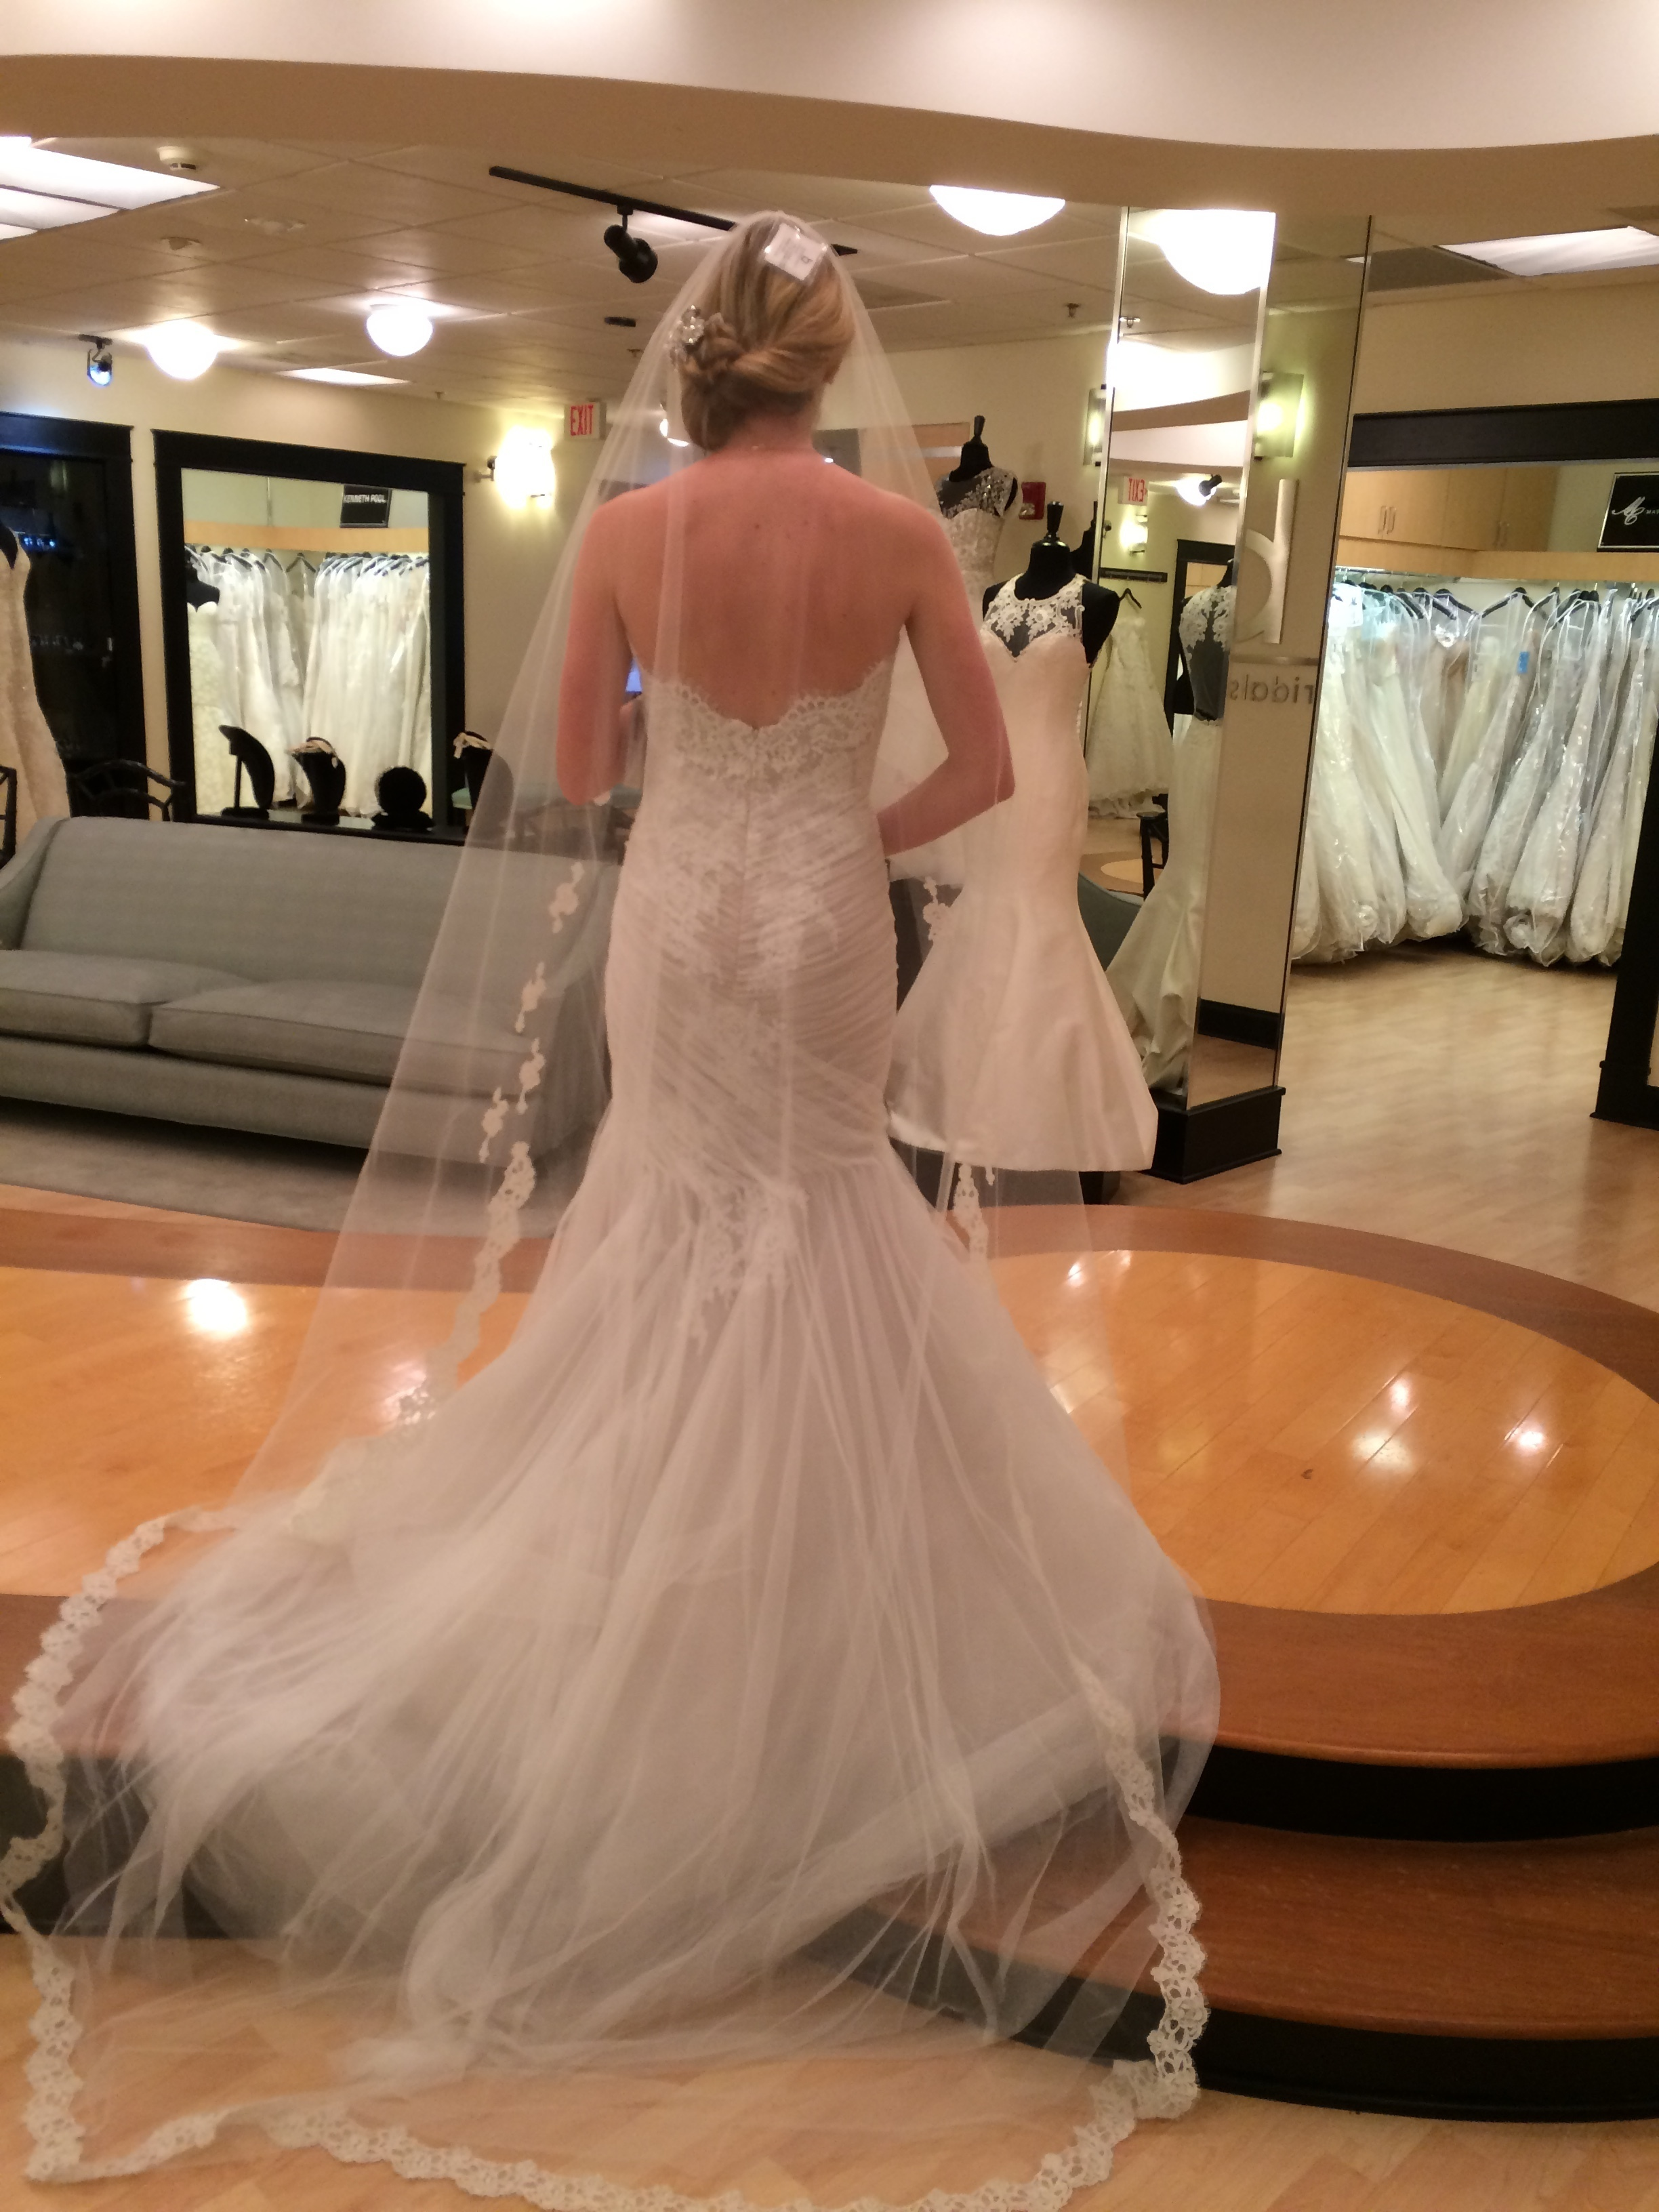 Monique lhuillier - 1516 size 6 - $2000 - (38% OFF)